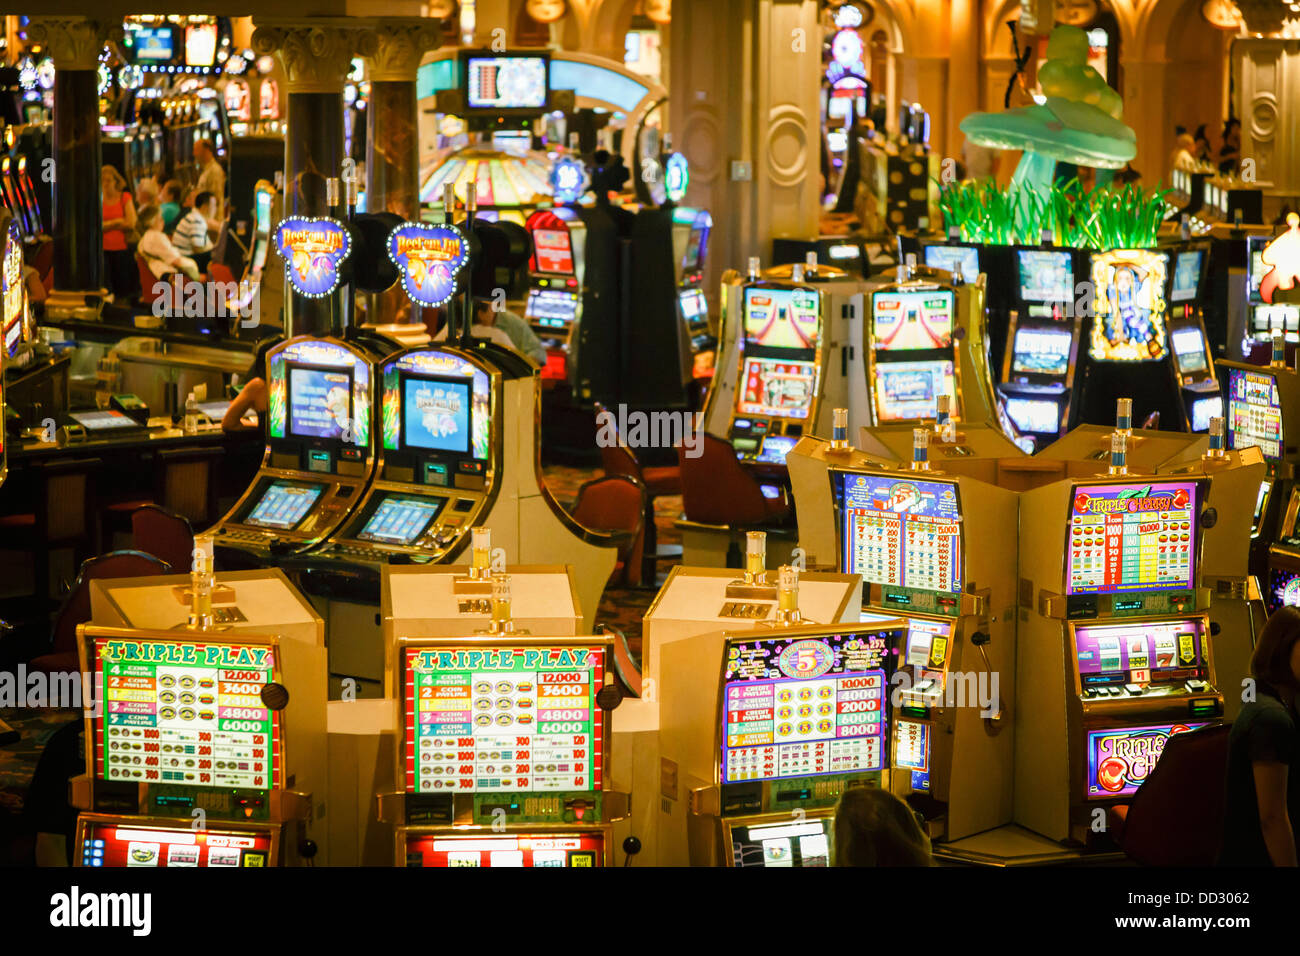 Slot machines in a casino at the Tropicana Hotel, Las Vegas - Stock Image